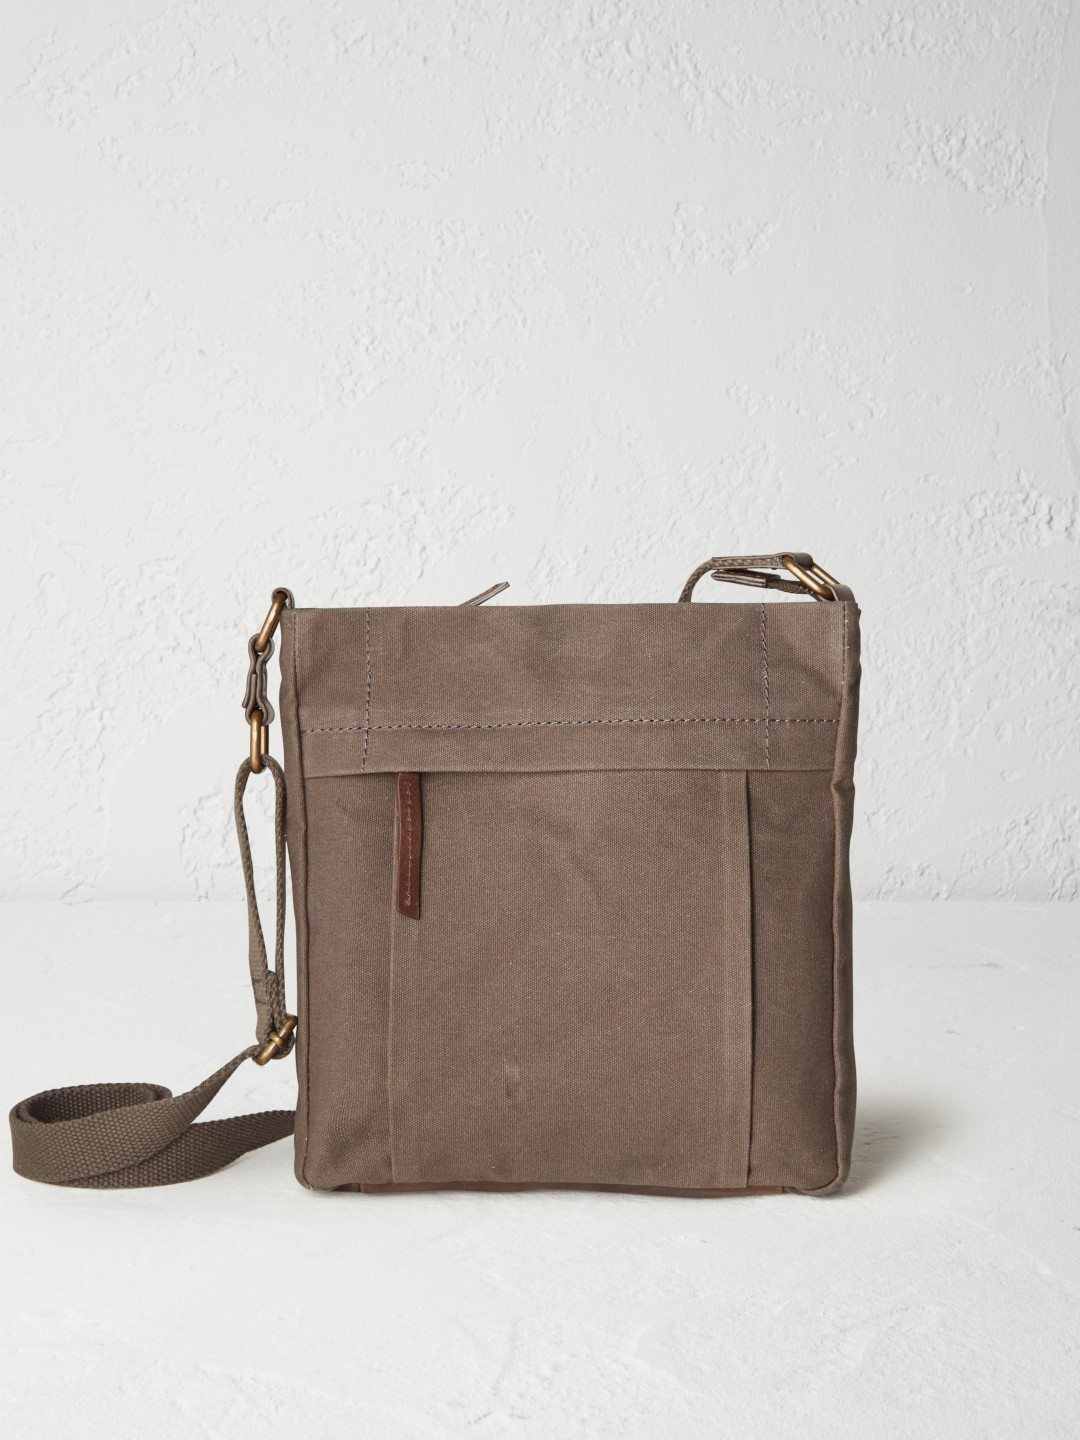 Adam canvas crossbody